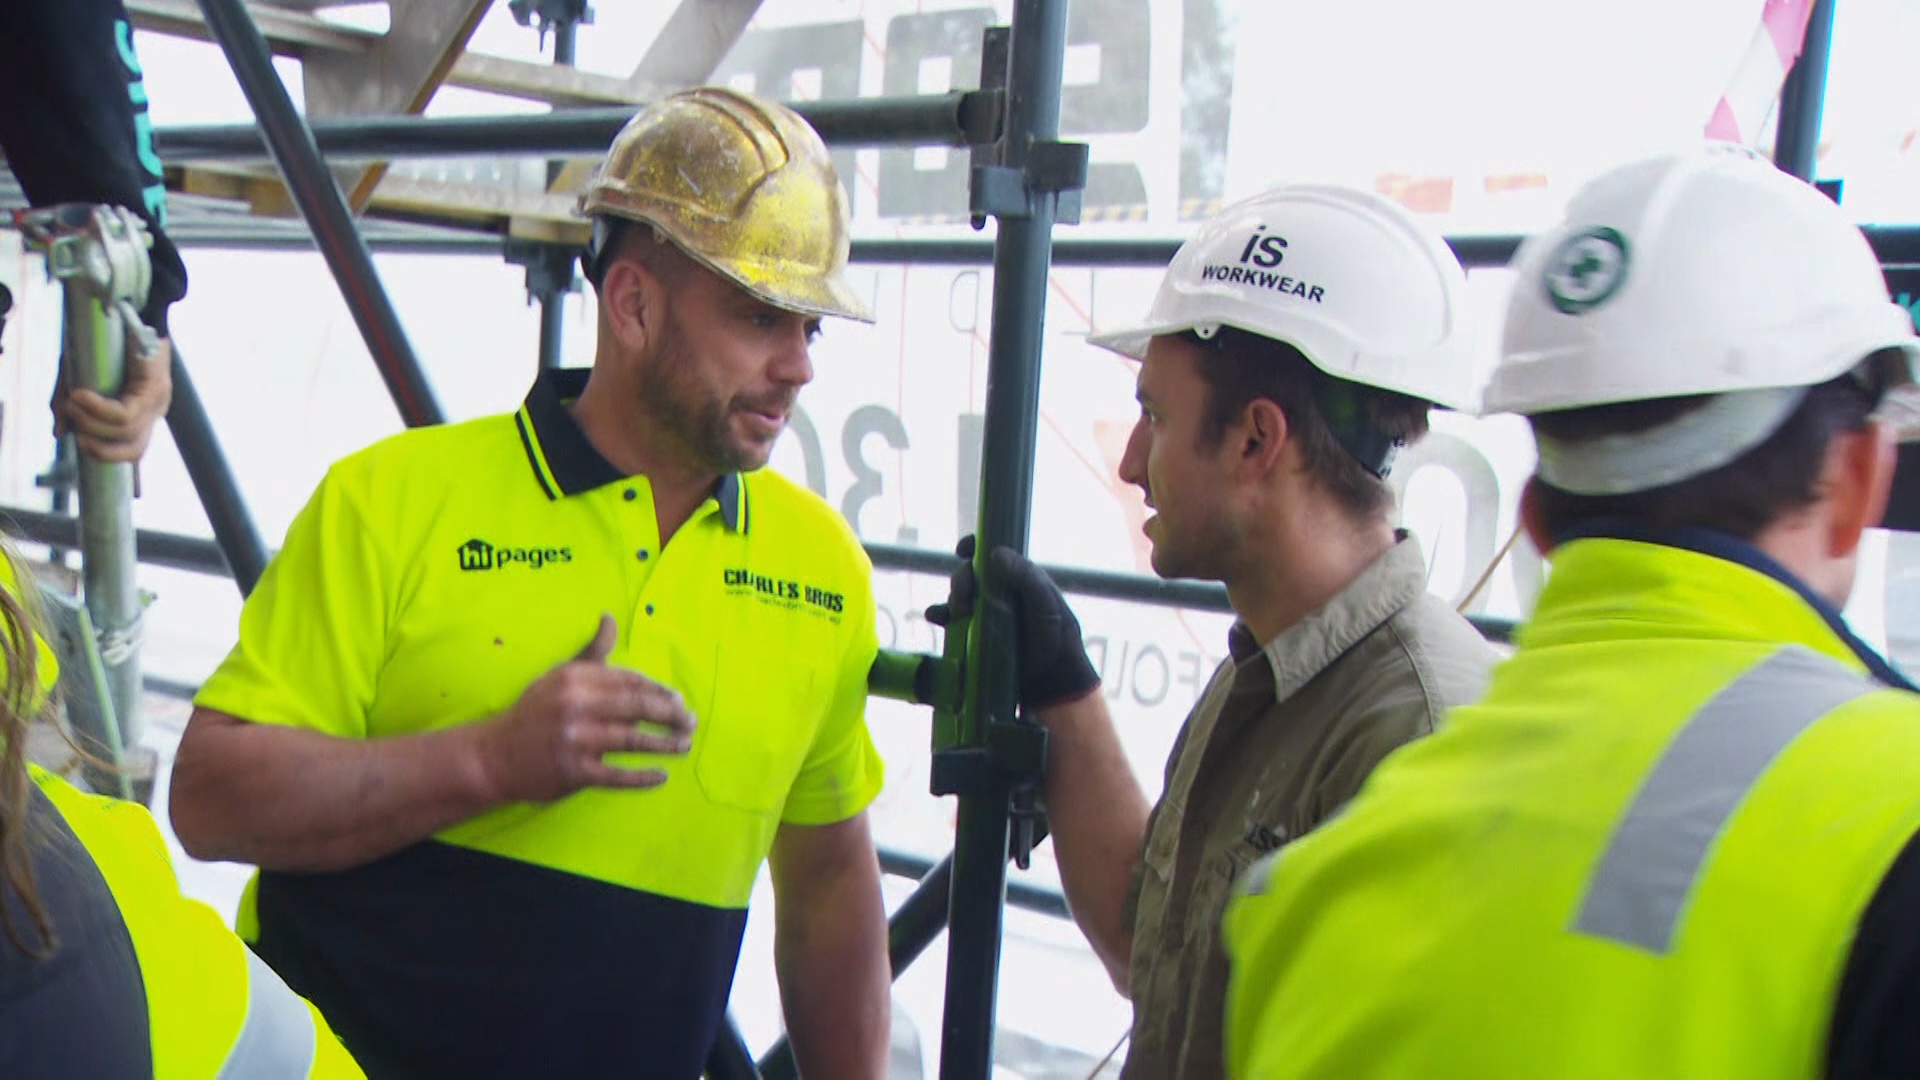 Jesse clashes with Mitch, Mark and their builder